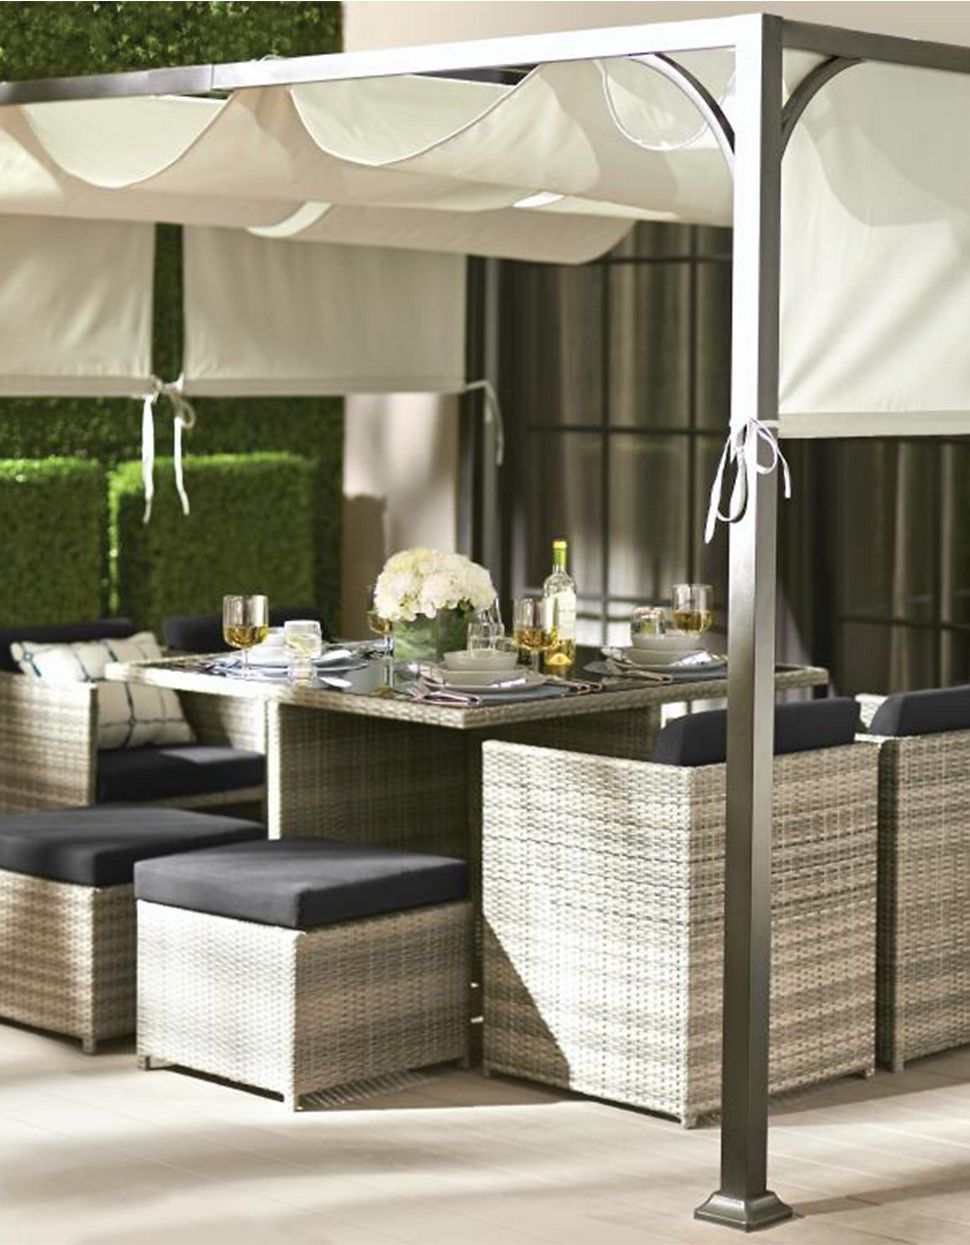 Smart Yet Stylish, This GlucksteinHome Dining Set Nests Together Making It  The Savvy Choice Where Space Is At A Premium. Porto Dining Set And  Sunshade, ... Part 14